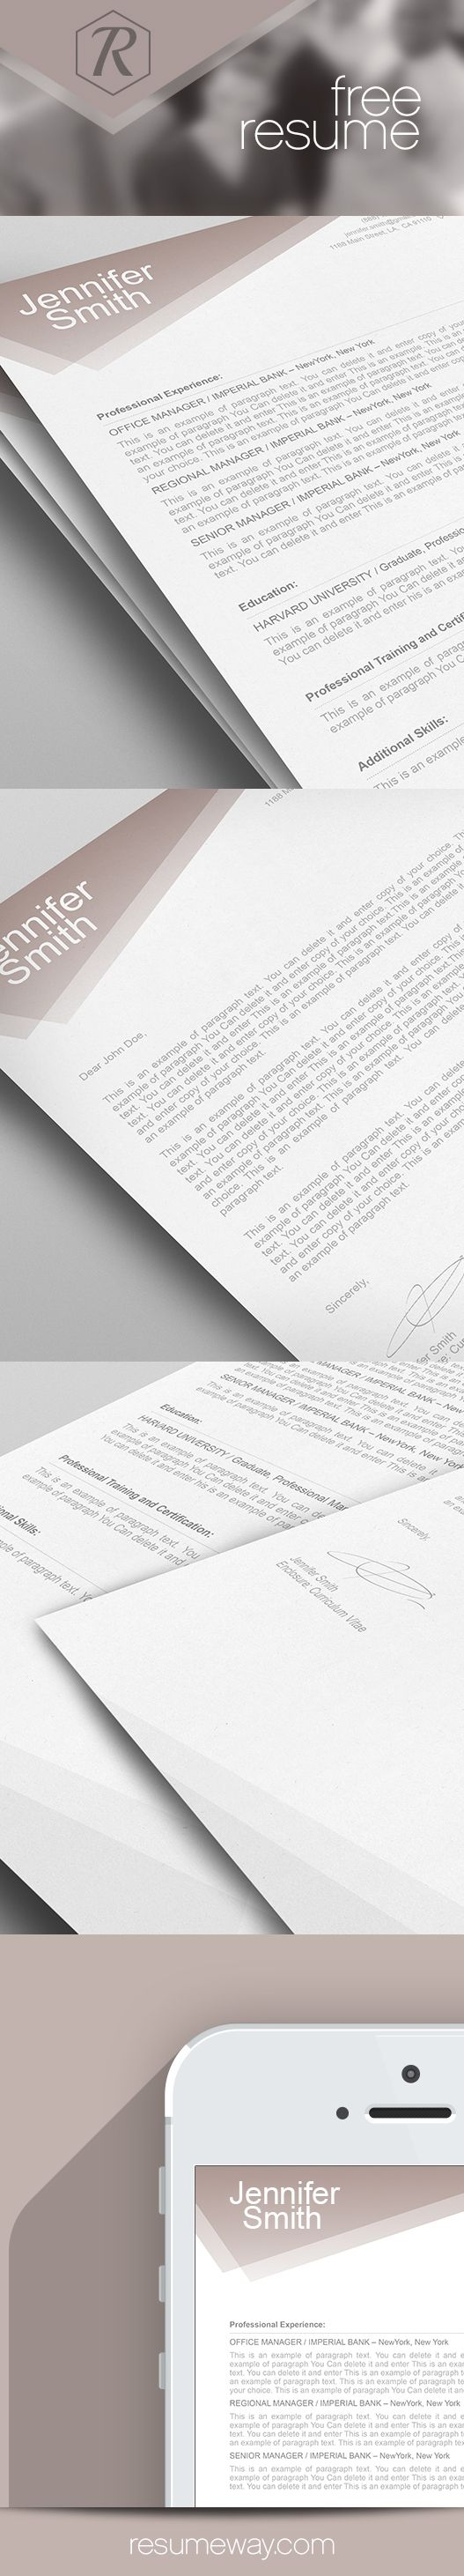 Best Free Resumes  Ms Word Images On   Cover Letter